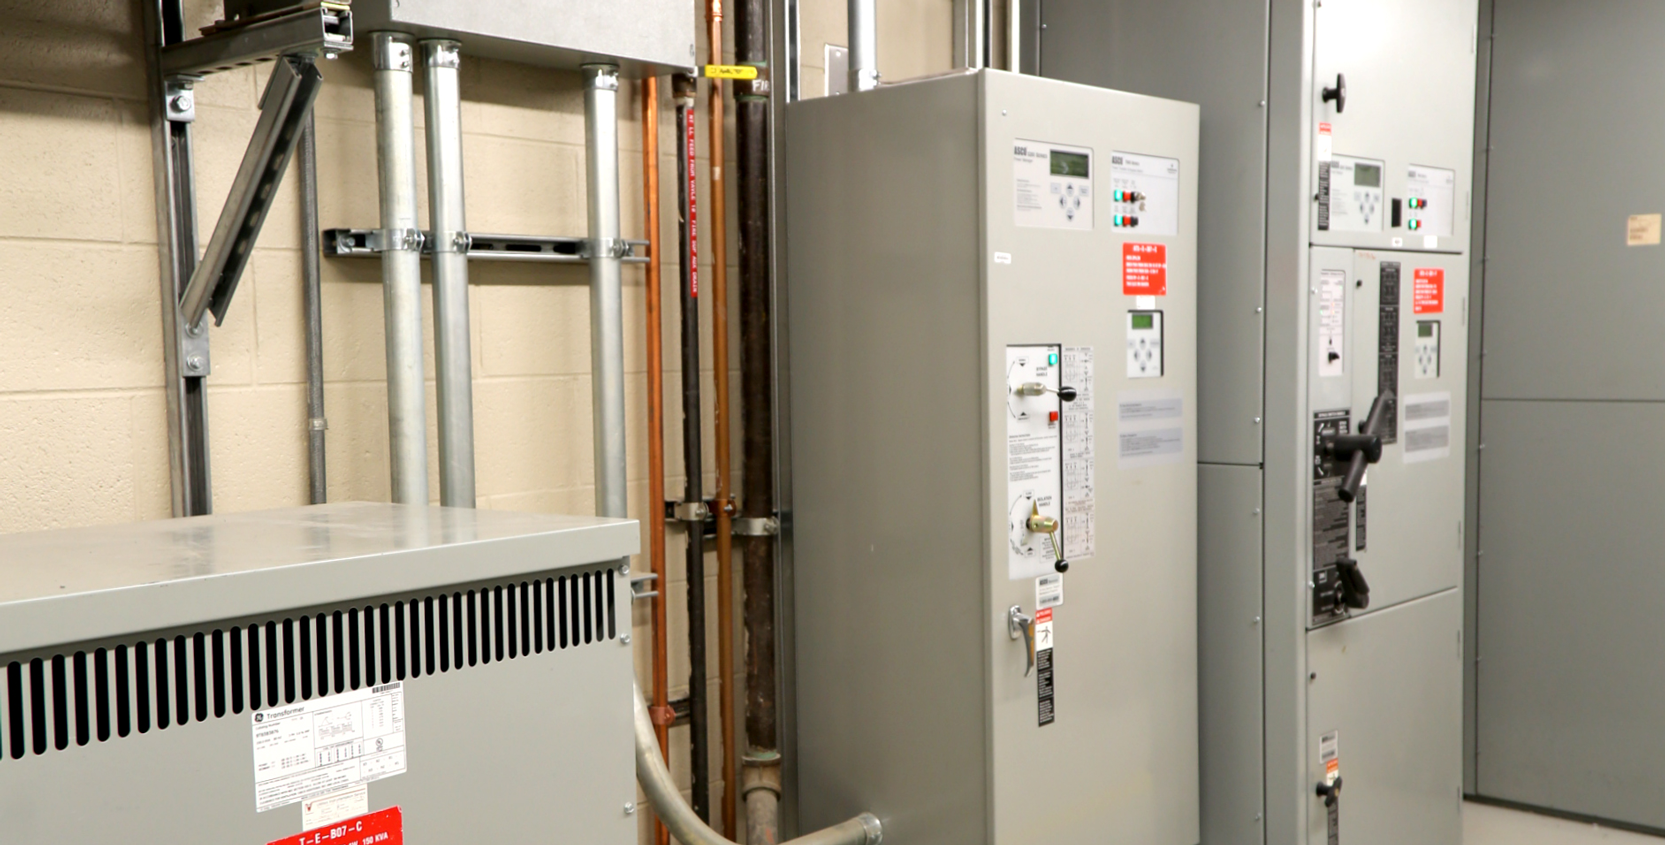 Beaumont-Royal-Oak-Emergency-Power-System-Upgrade-Electrical-1665x845